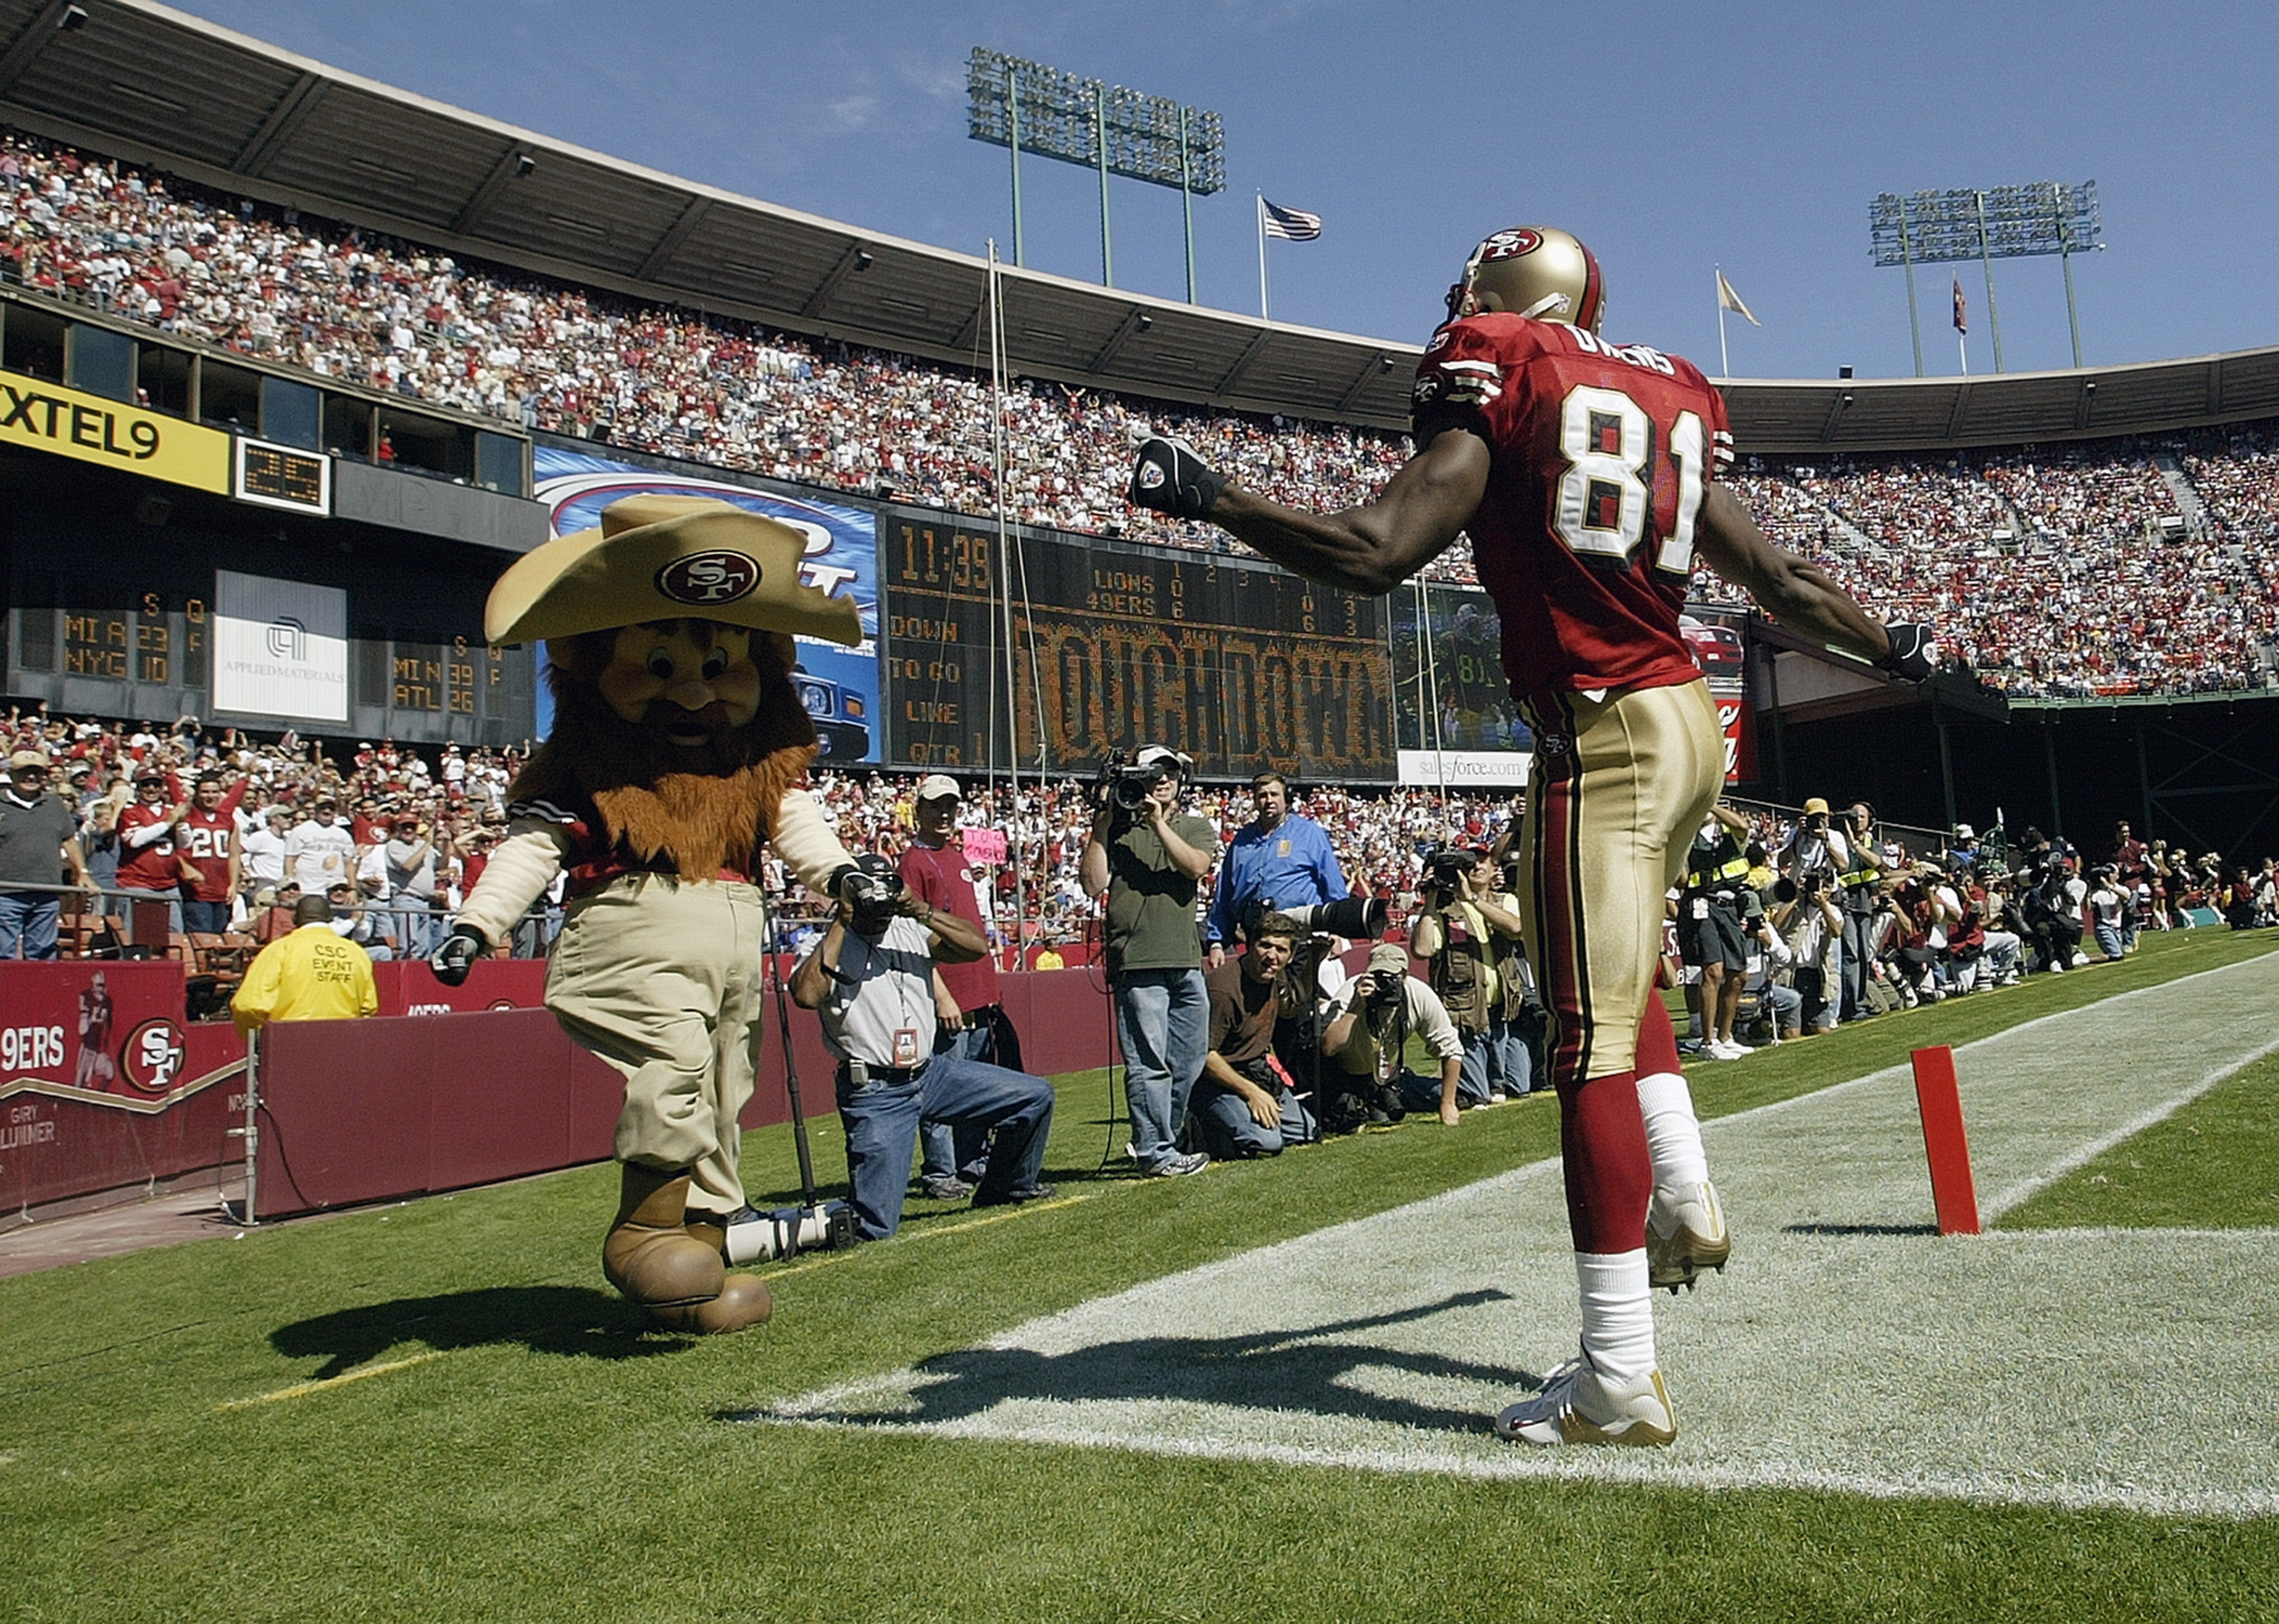 SAN FRANCISCO - OCTOBER 5:  Wide receiver Terrell Owens #81 of the San Francisco 49ers does a dance with 'Sourdough Sam' to celebrate his touchdown catch against the Detroit Lions on October 5, 2003 at 3 Com Park in San Francisco, California.  The 49ers d